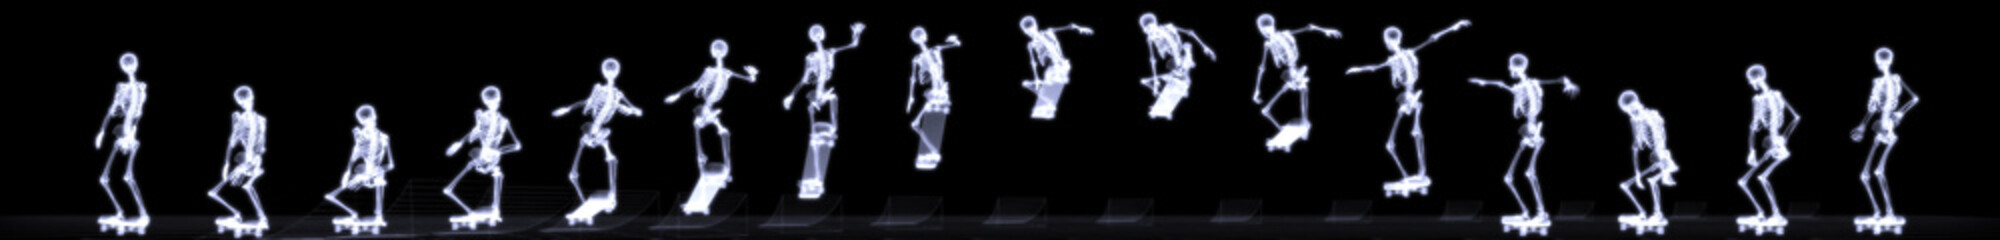 Xray of human skeleton jumping freestyle